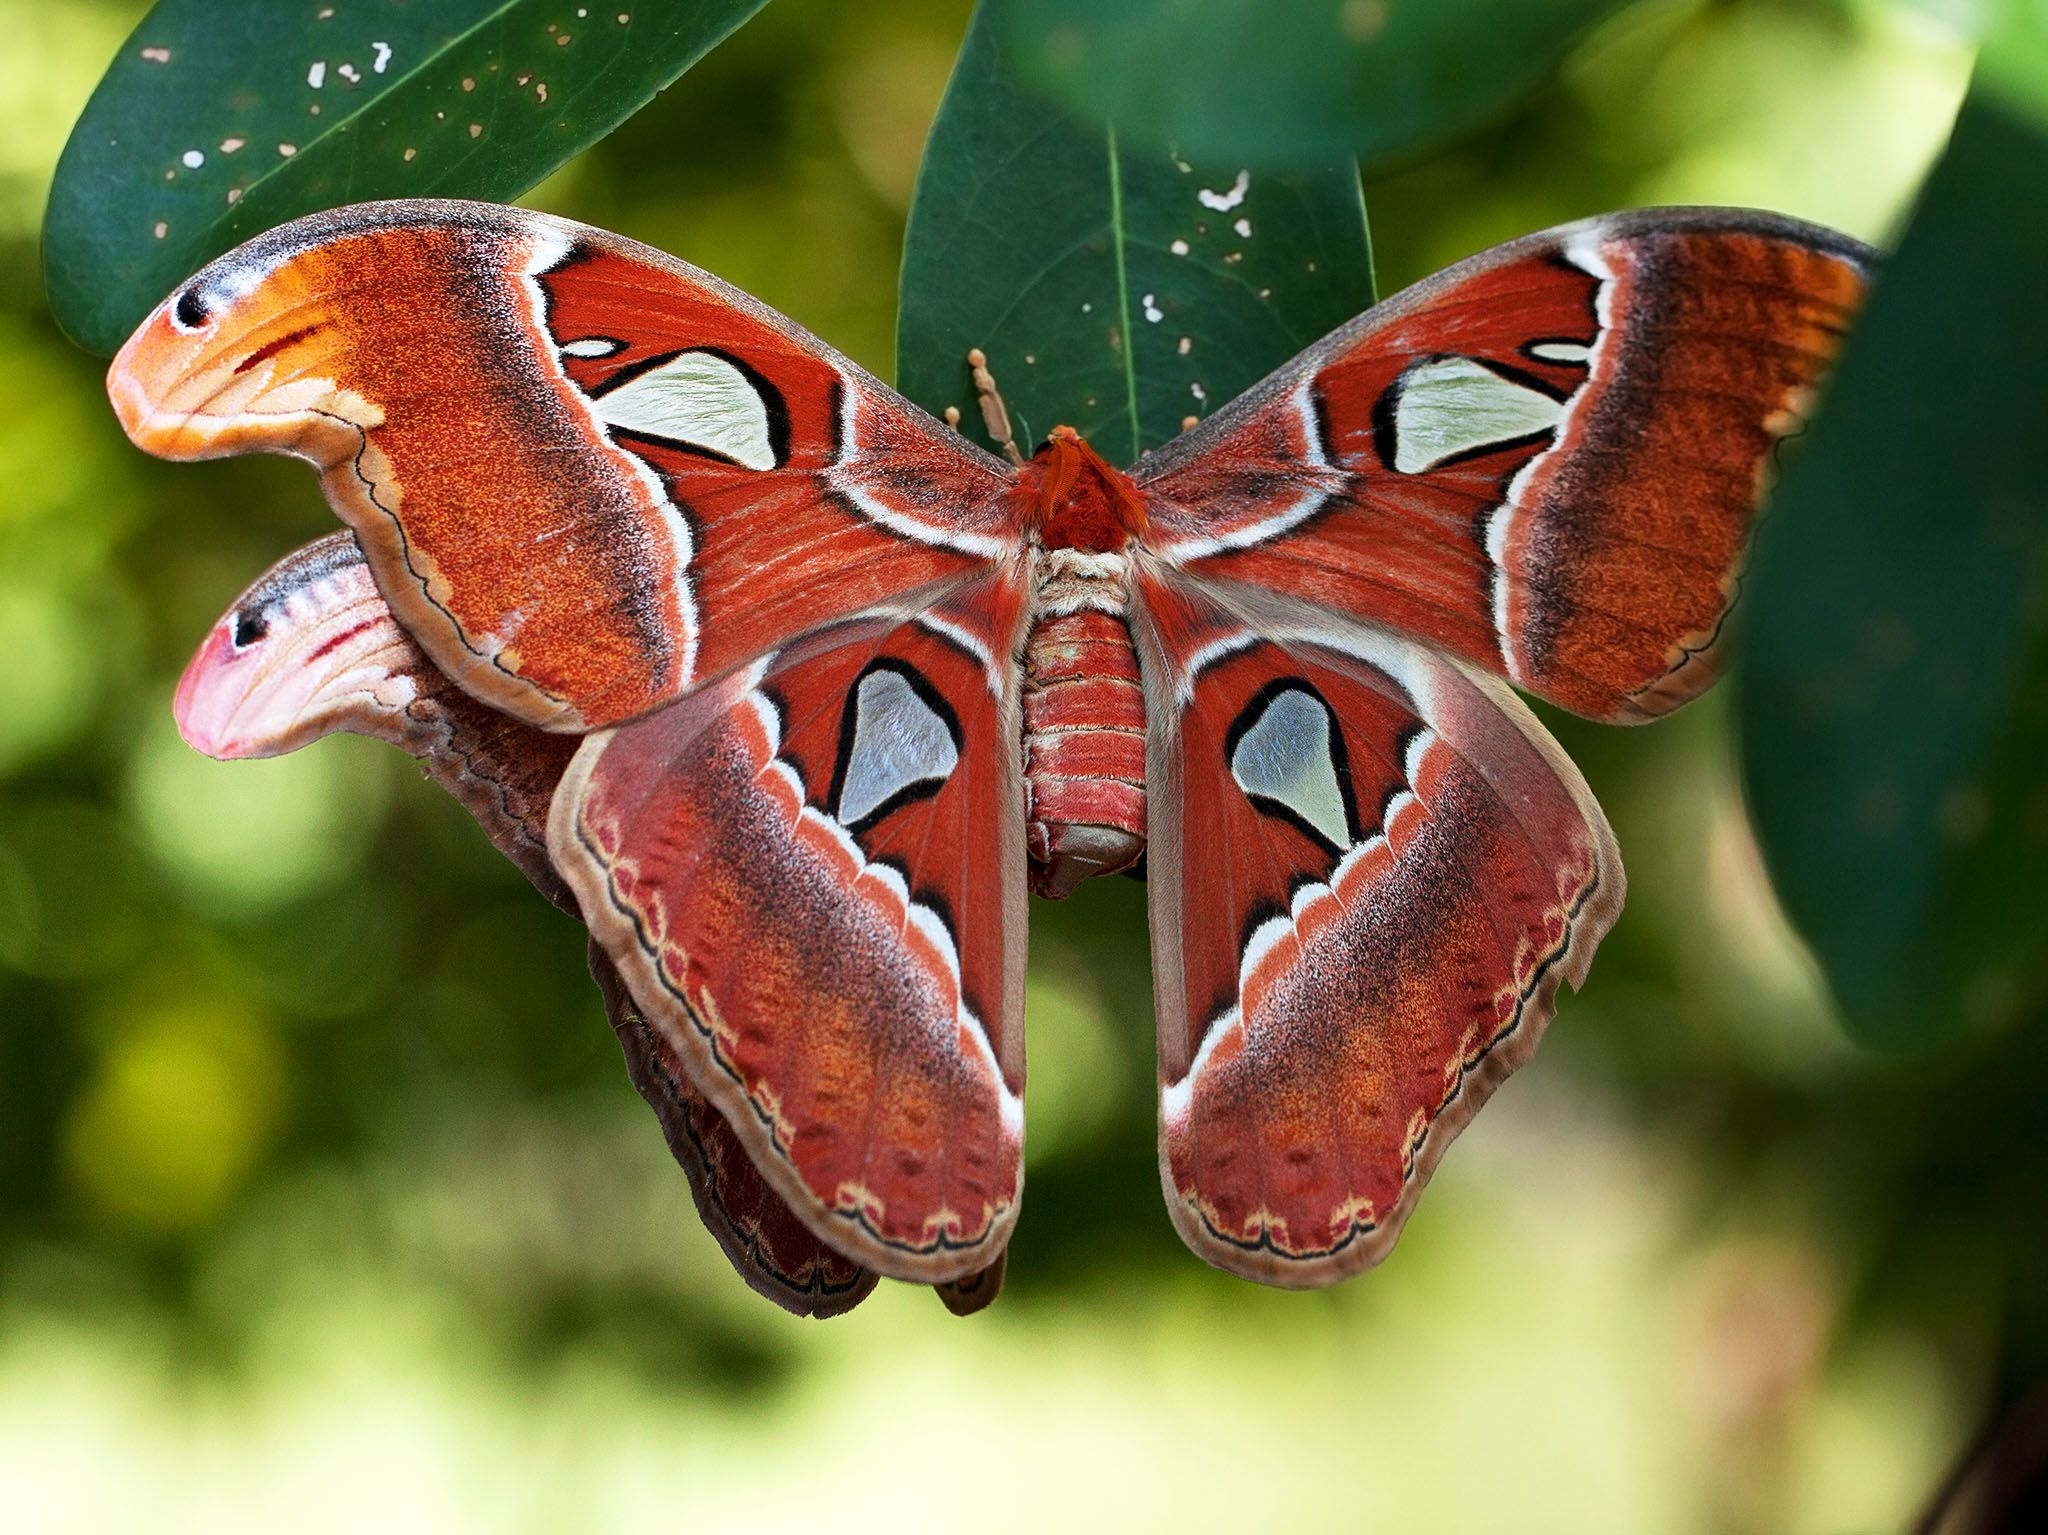 Brunei: Hercules Moths, mating. This image is from Paradise Islands. [Foto del giorno - settembre 2017]